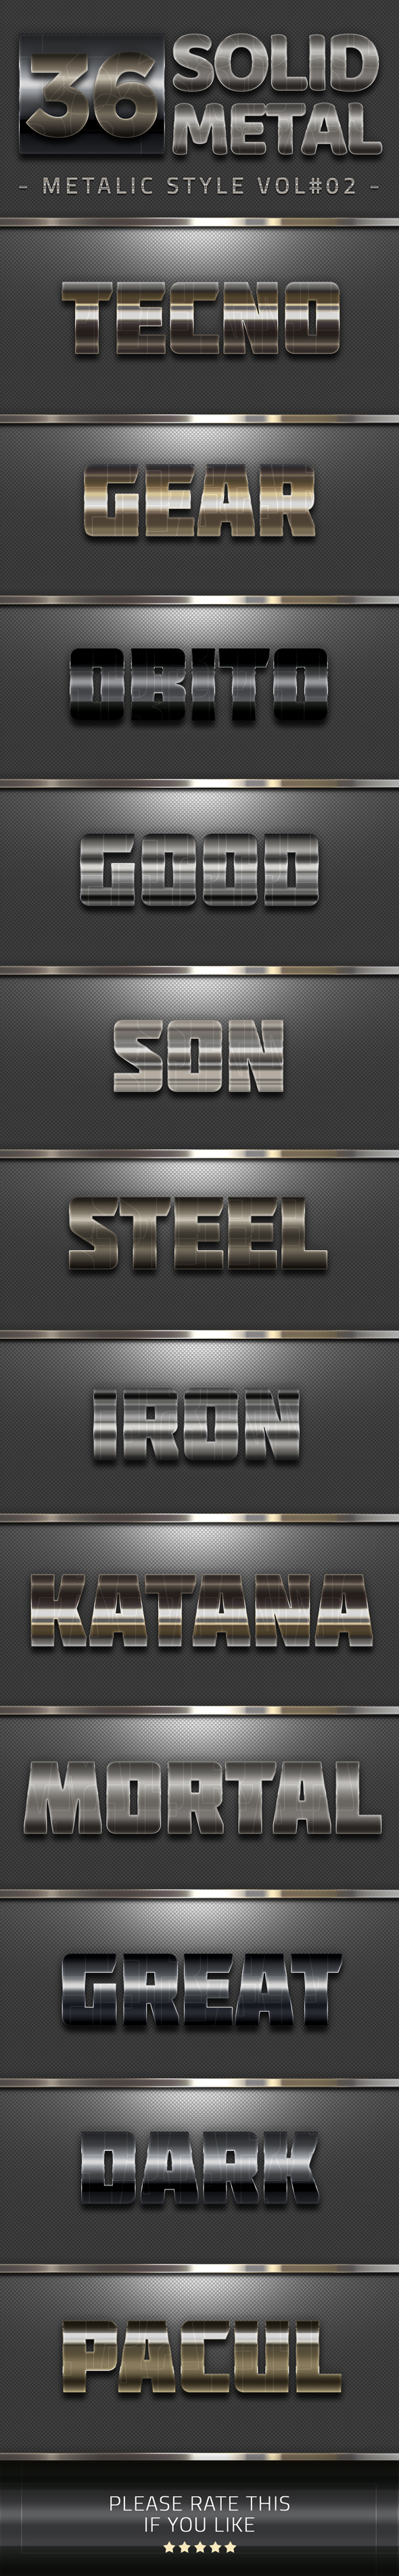 GraphicRiver 36 Solid Metal Text Effect V02 20609998